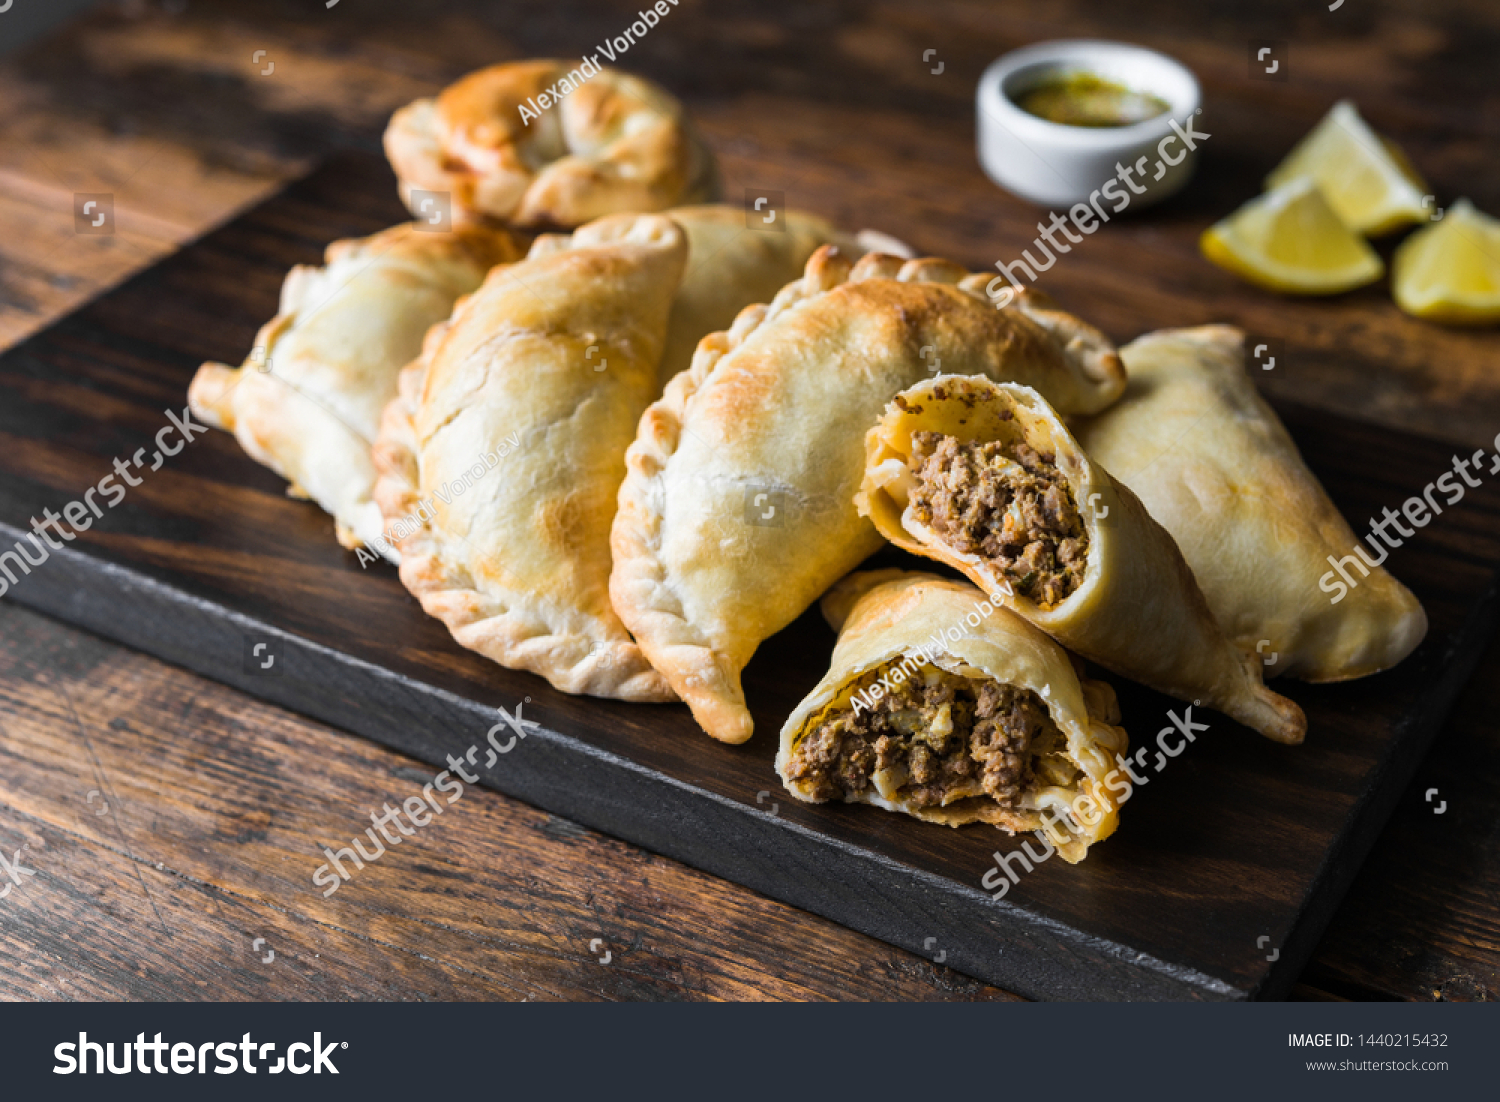 Traditional baked Argentine empanadas savoury pastries with meat beef stuffing against wooden background #1440215432